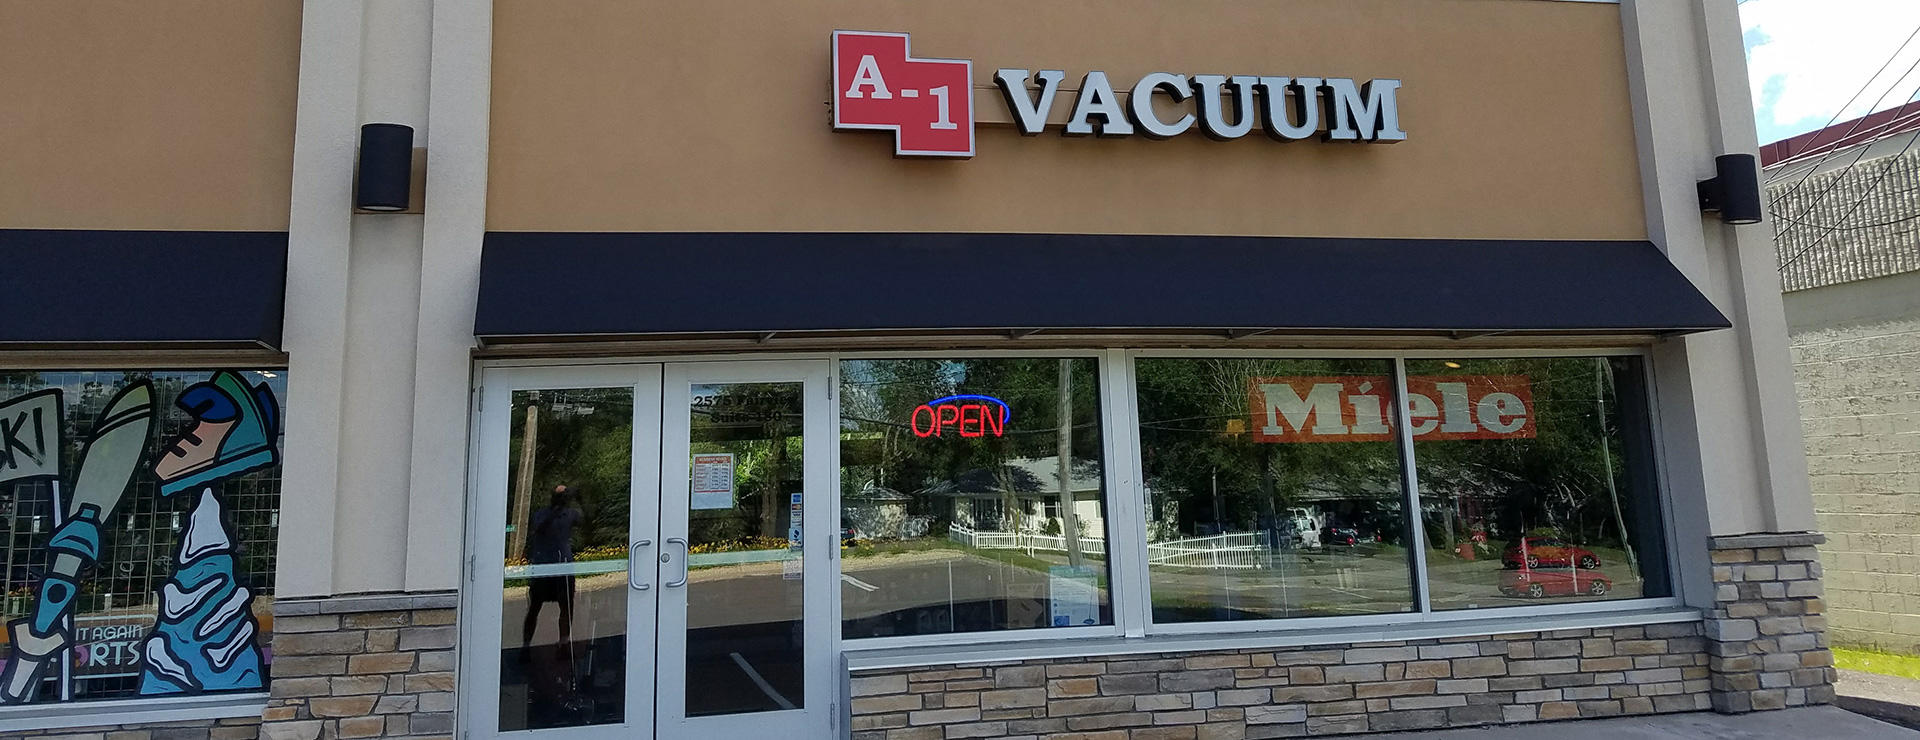 A-1 Vacuum Cleaner Company image 7